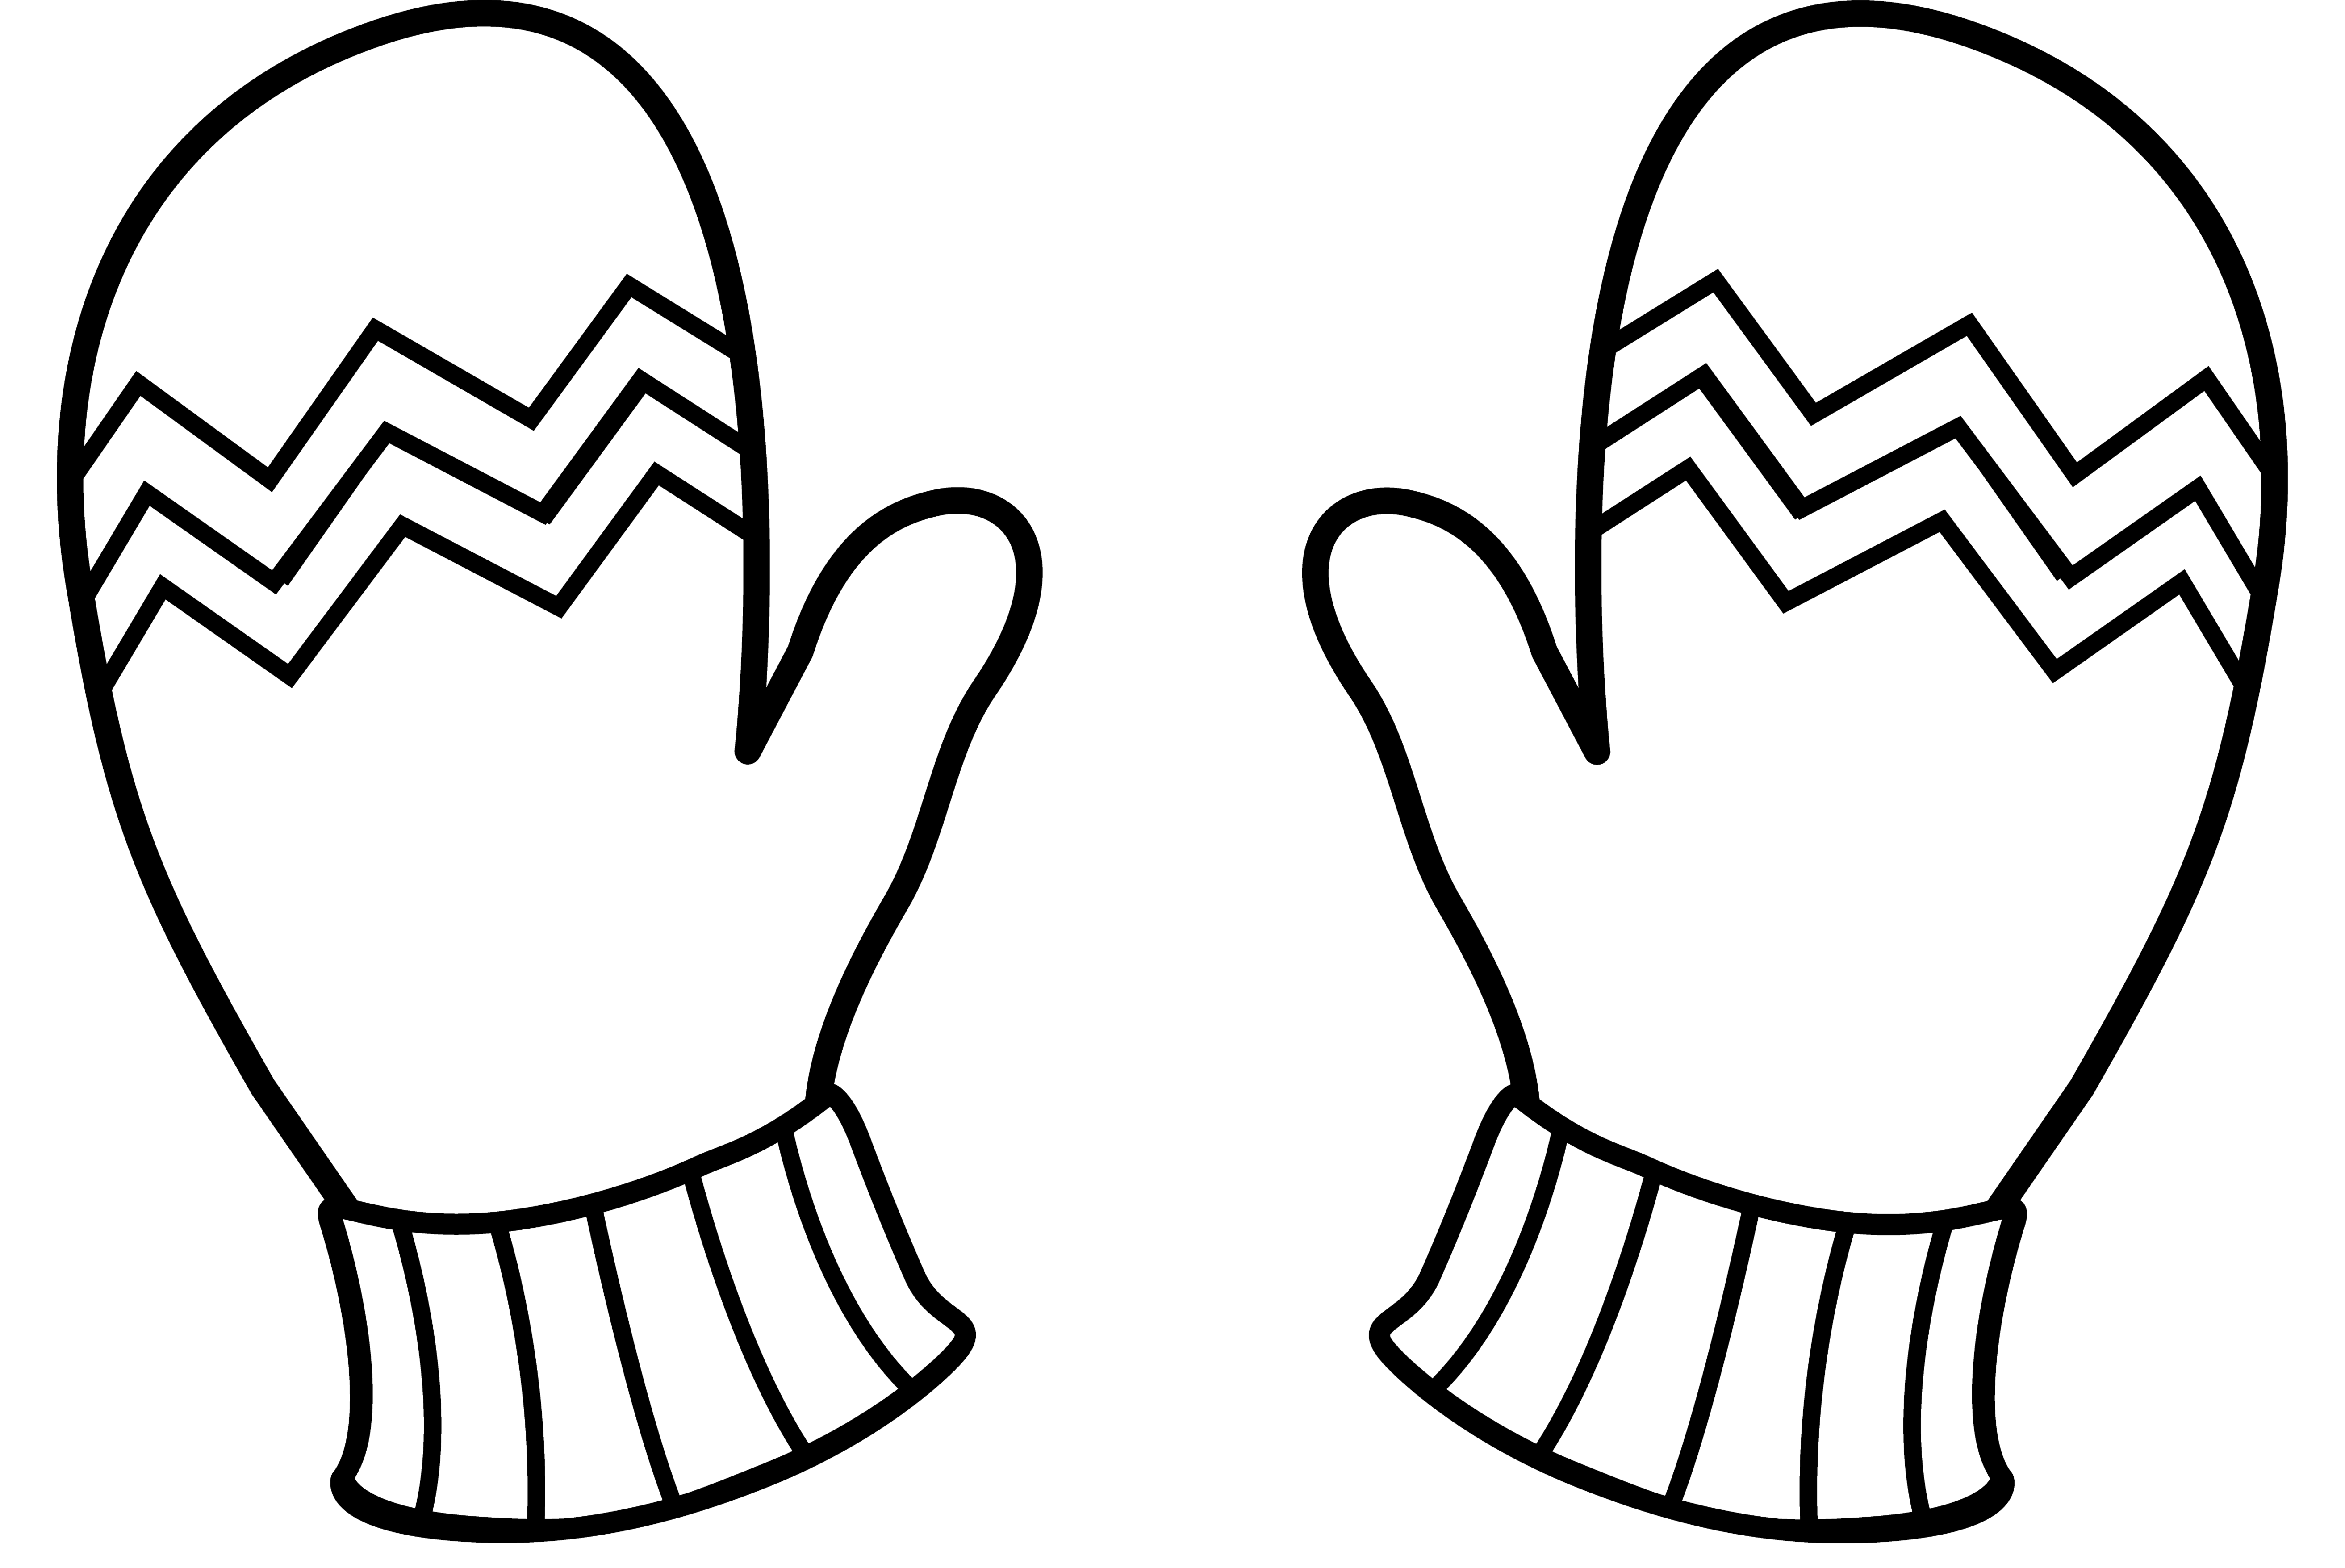 Mittens clipart outline.  collection of winter